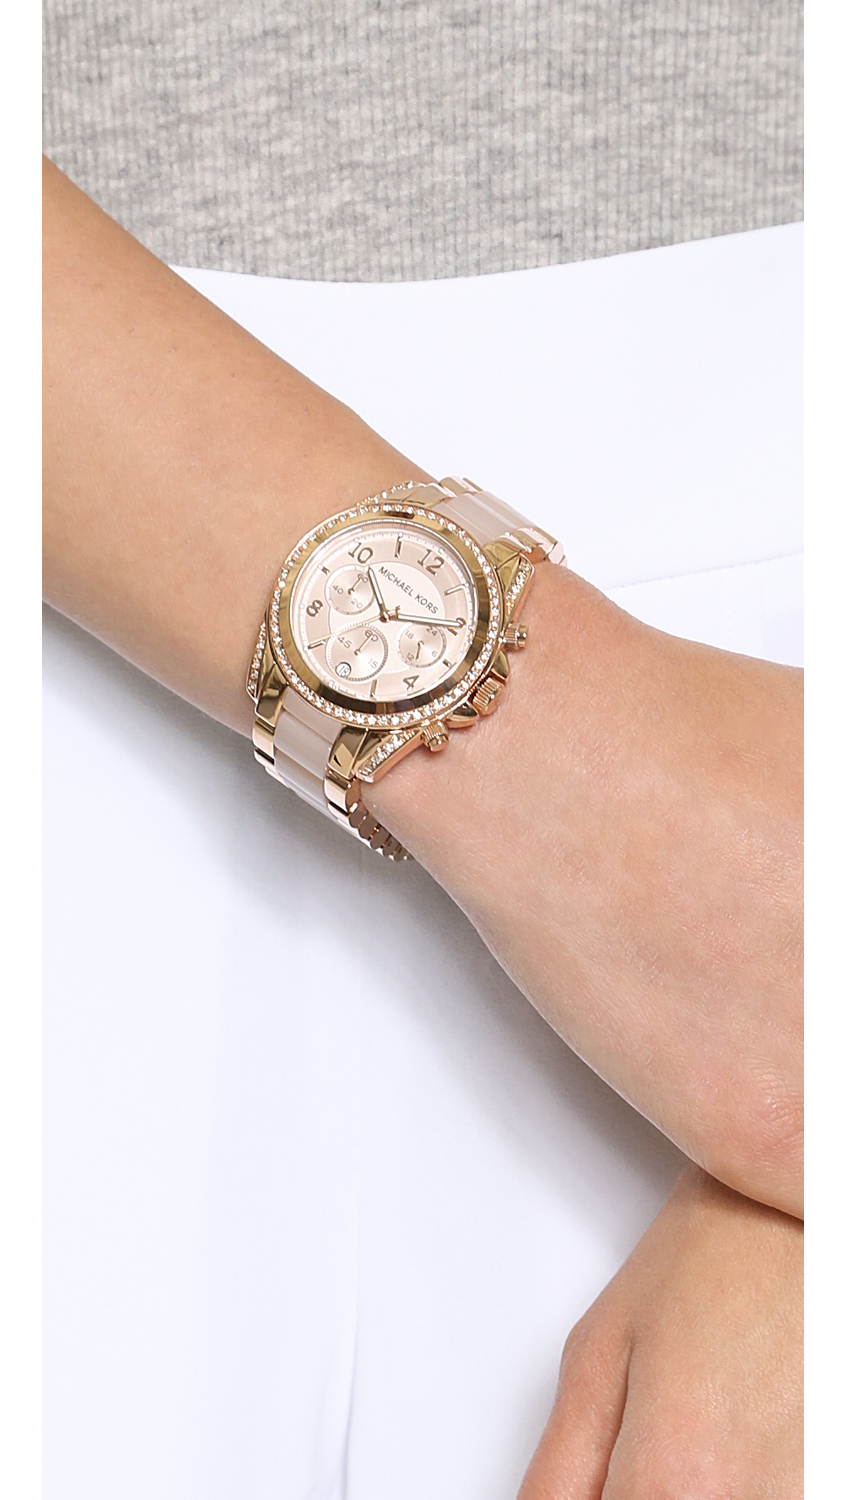 90a9fece0 Michael Kors Blair Rose Gold-Tone Chronograph Watch - HD Image ...